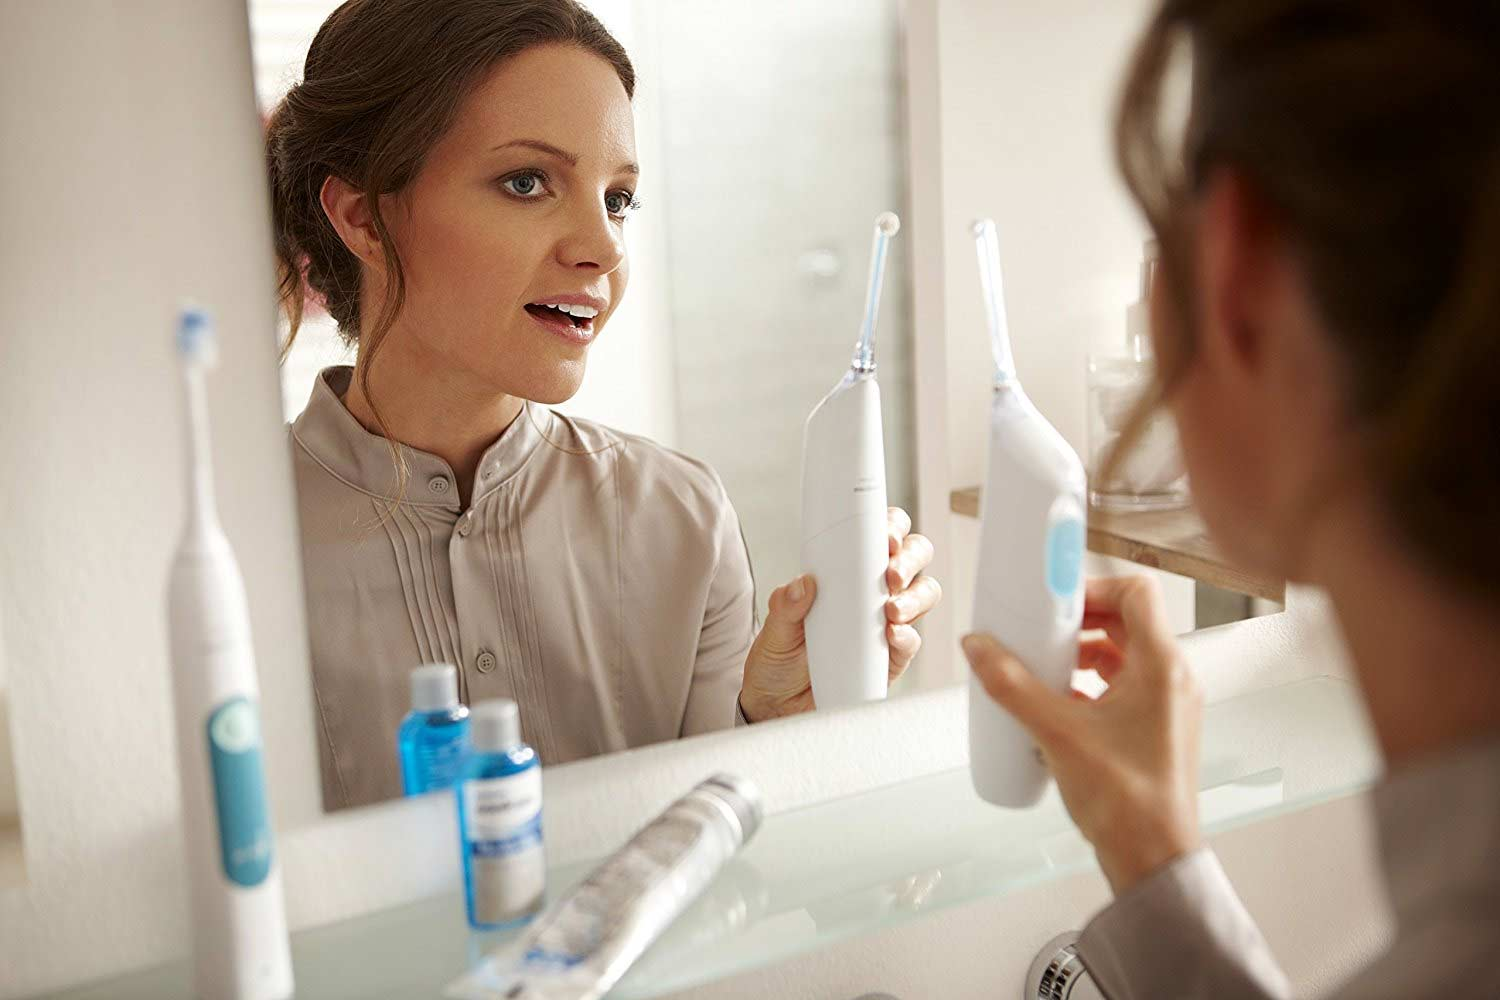 Philips AirFloss Pro in Use